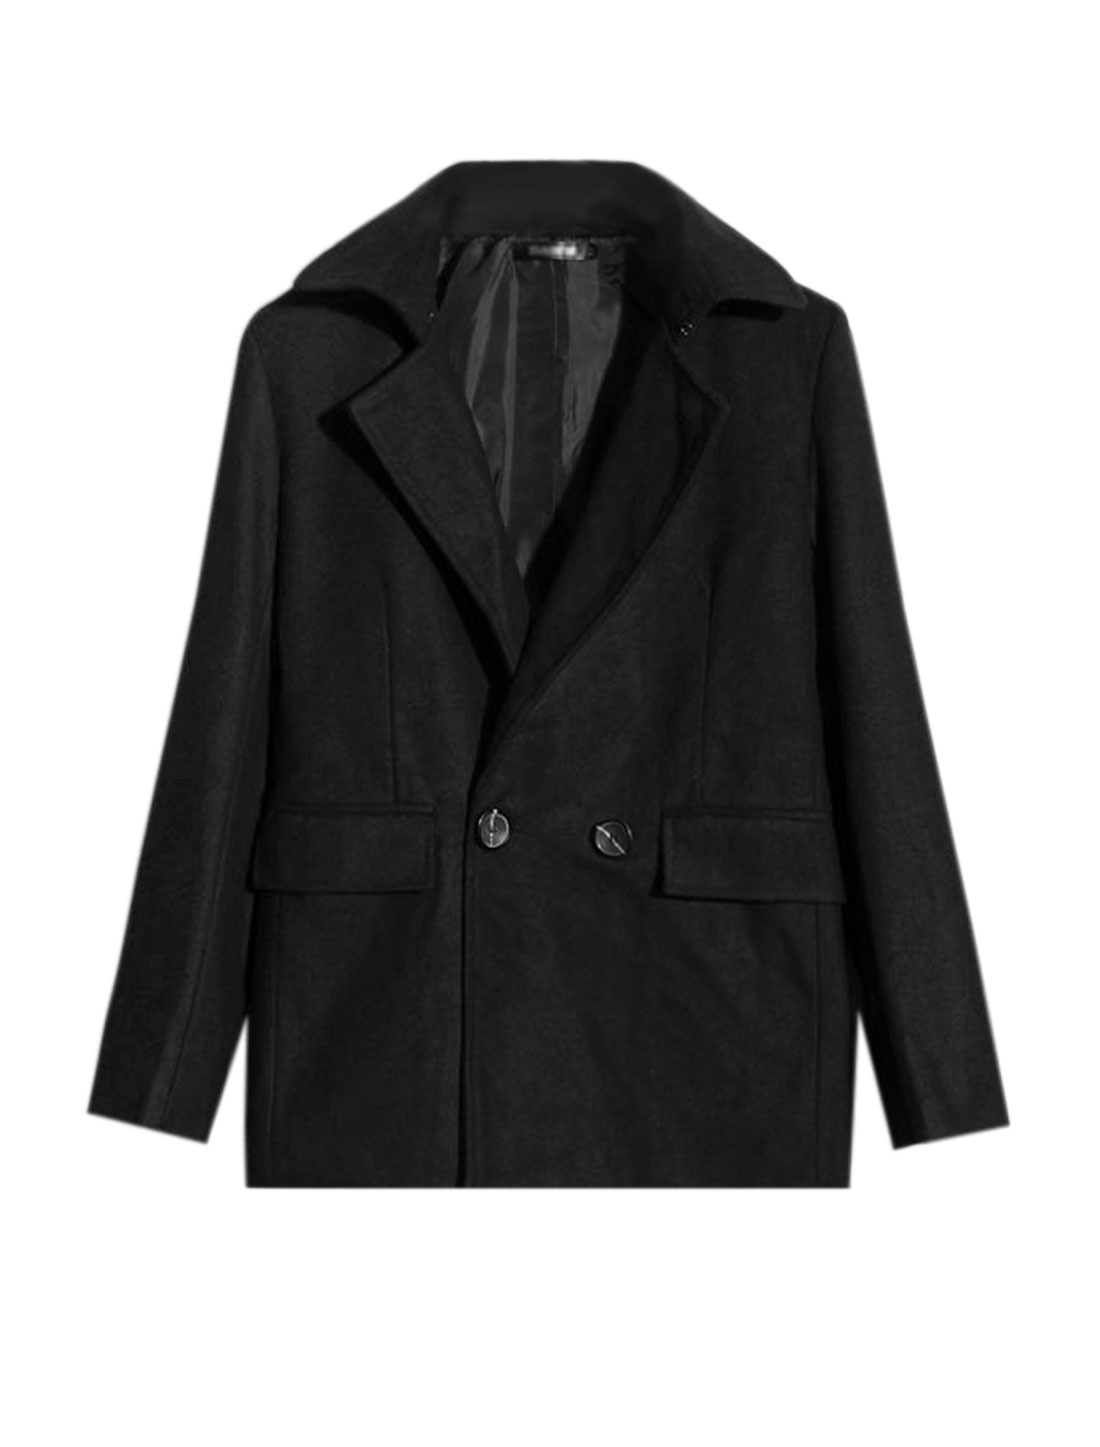 Men Convertible Collar Double Breasted Worsted Coat Black M